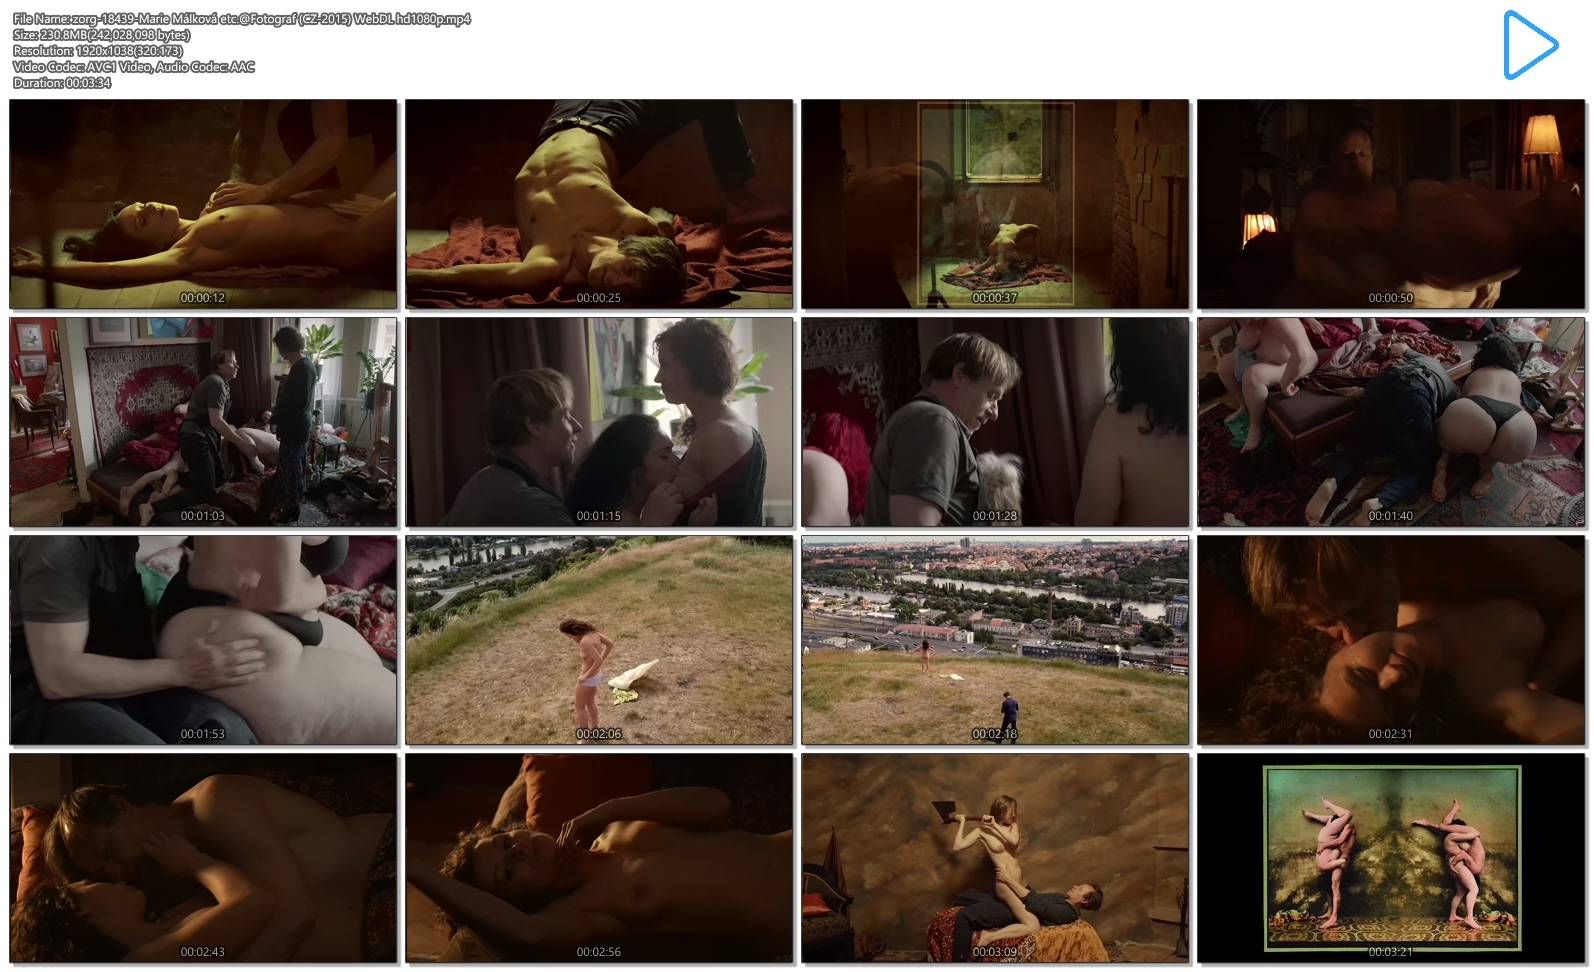 Marie Málková nude full frontal sex and others nude - Fotograf (CZ-2015) Web-DL hd1080p (12)